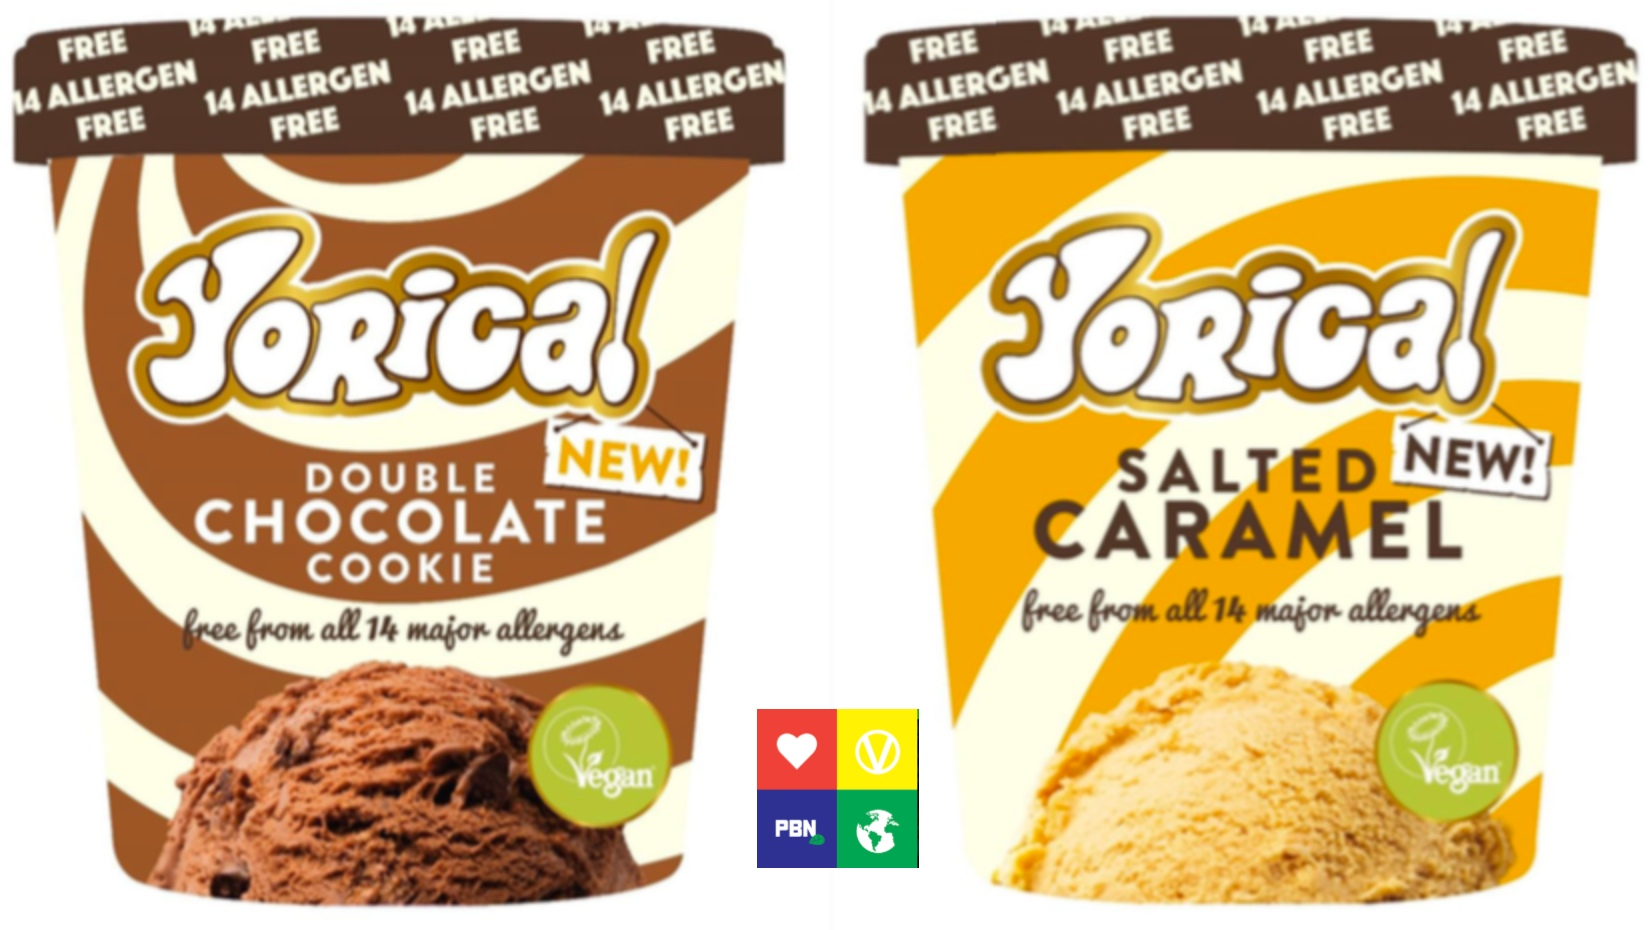 Yorica! vegan ice-cream